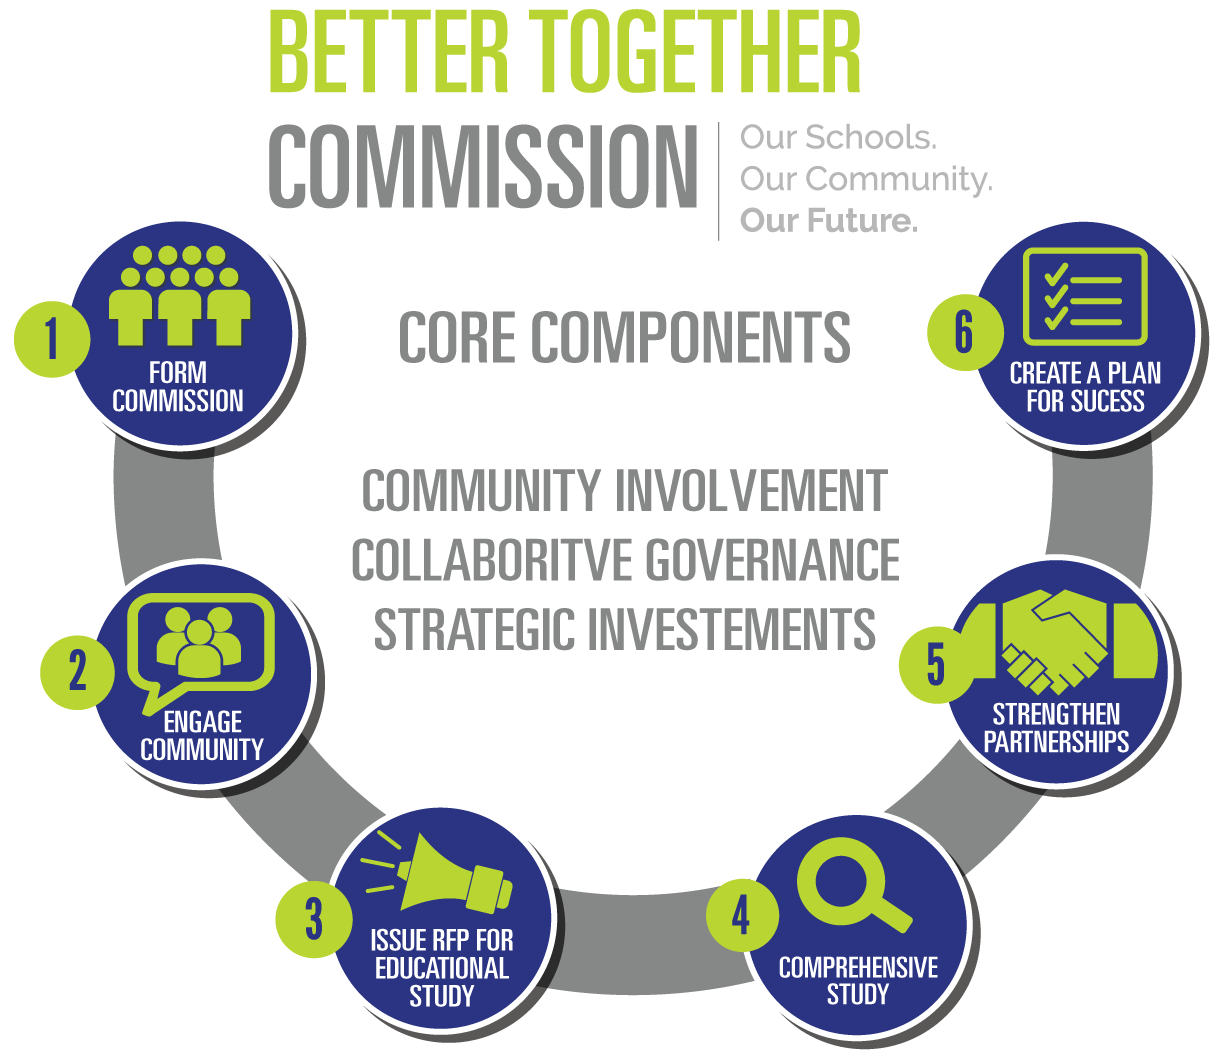 better together commission our schools our community our future